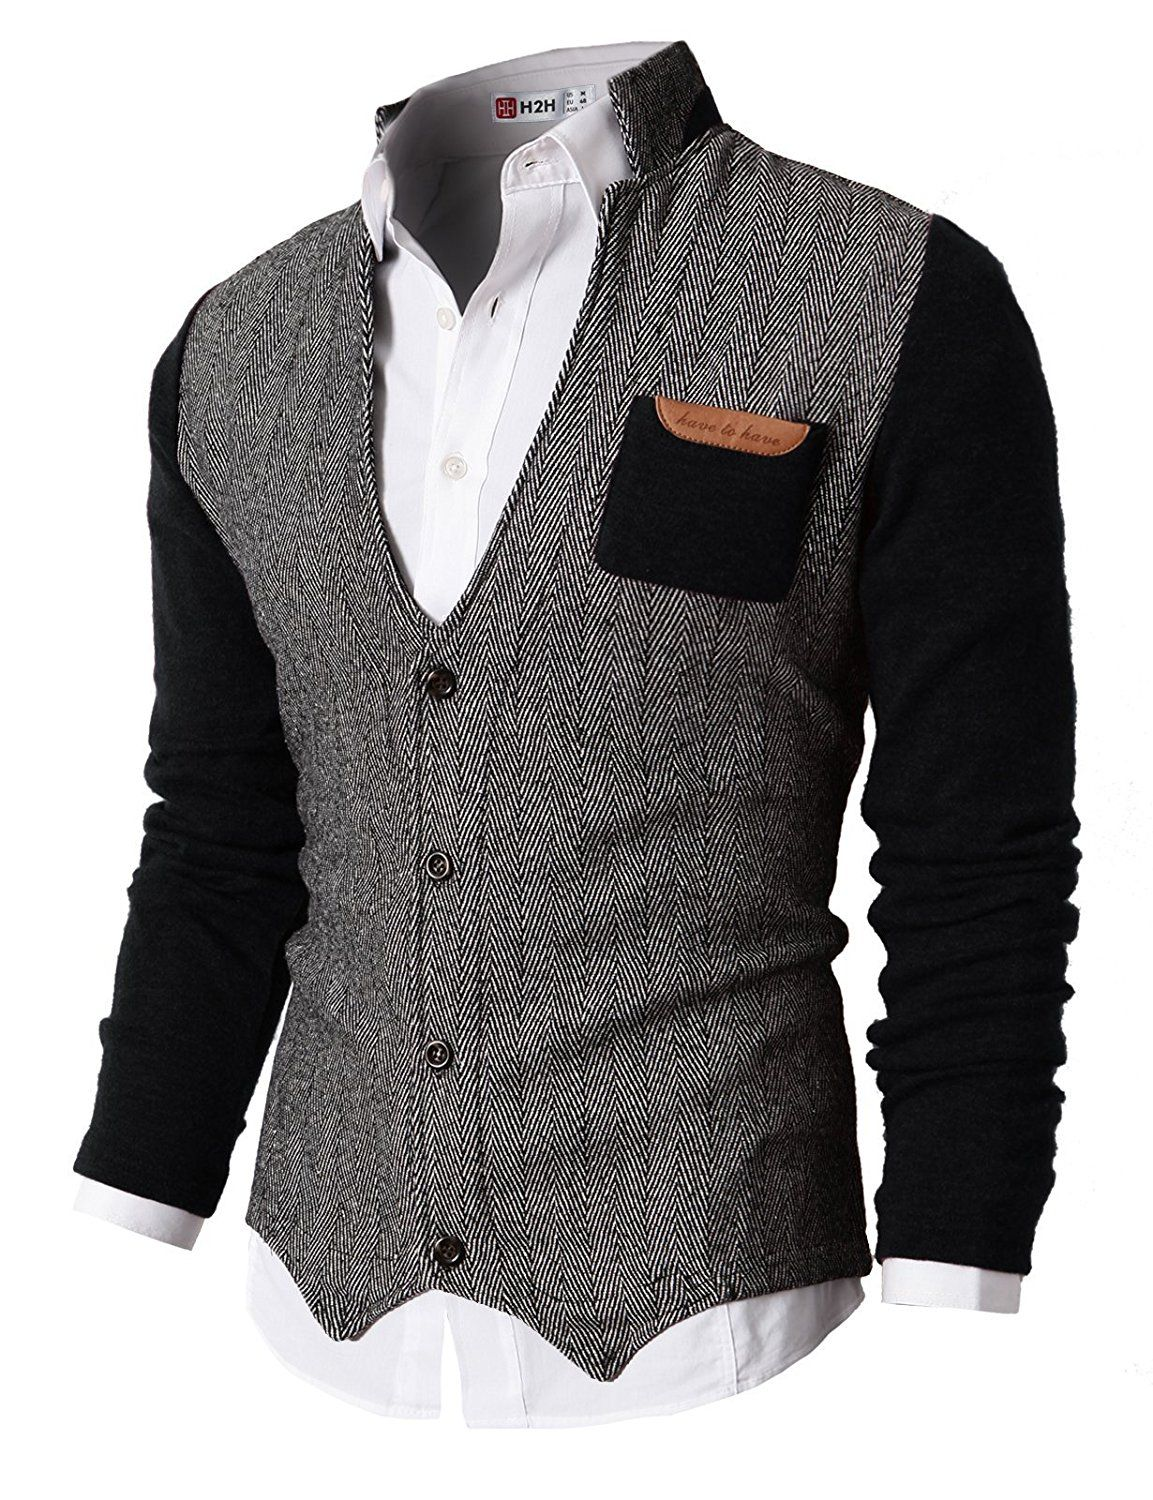 5c535891d5 H2H Mens Herringbone Cardigan Sweater of Knitted Sleeves BLACK US 2XL Asia  3XL (KMOSWL015)